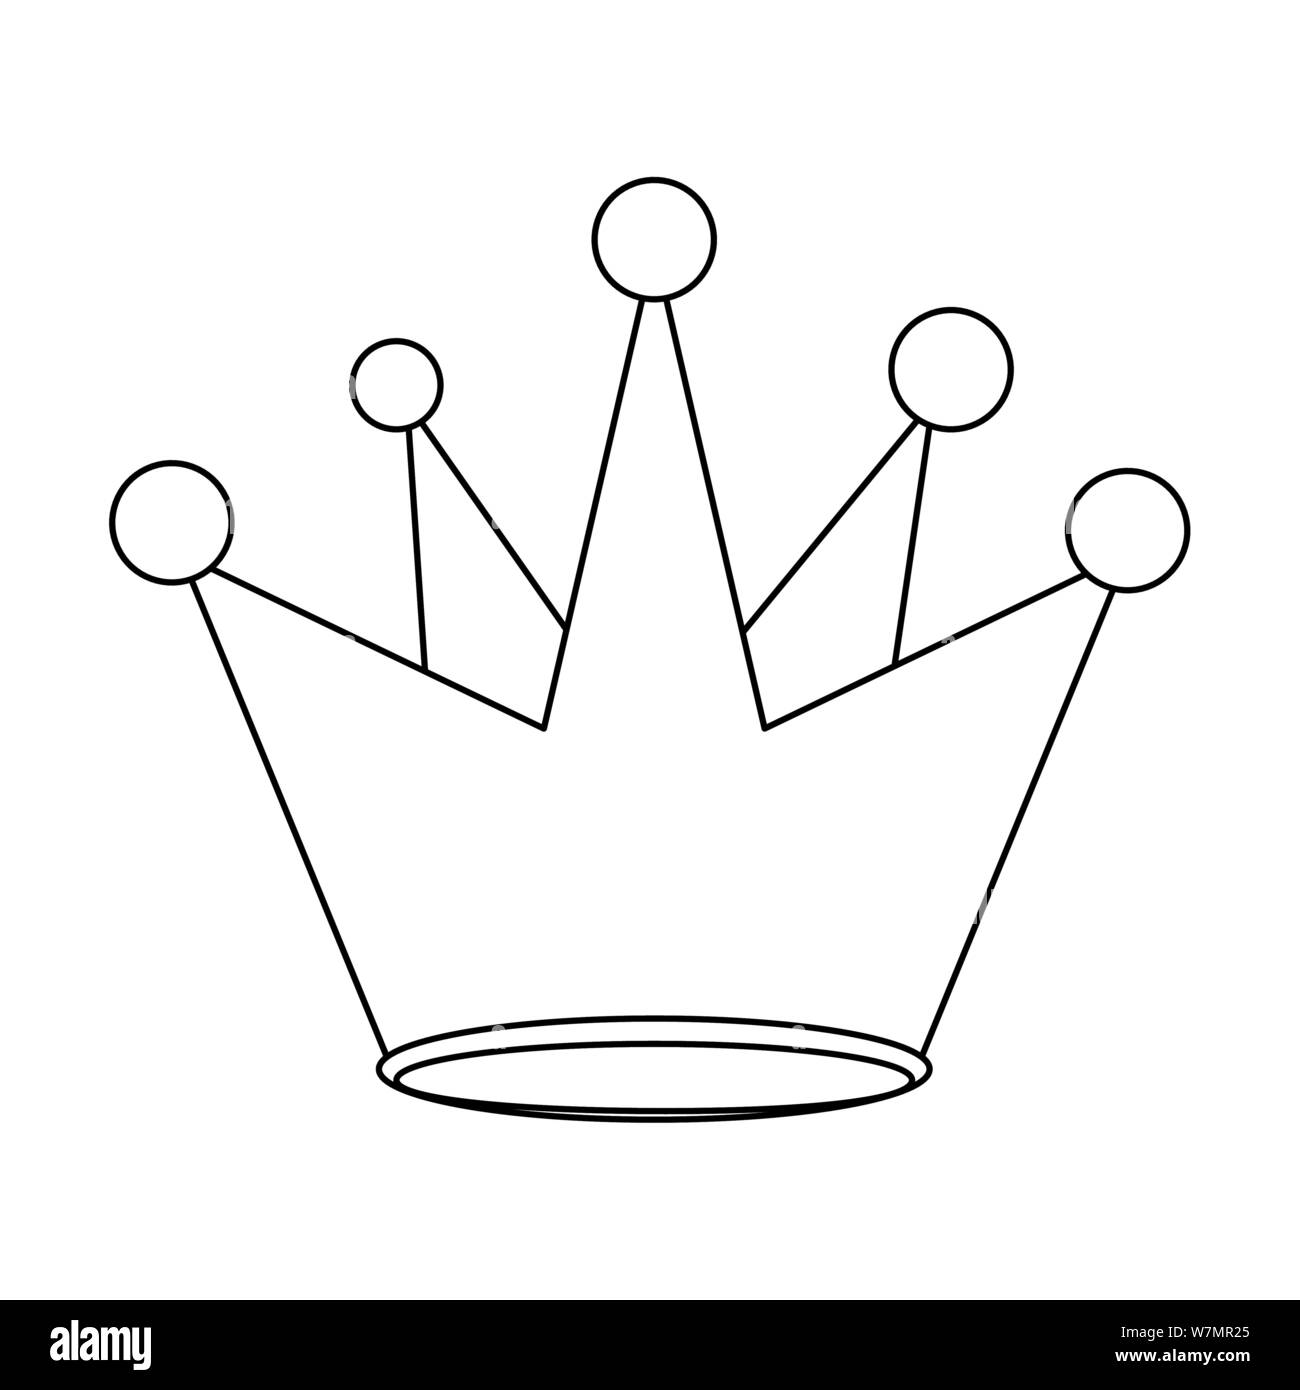 King Crown Royal Luxury Cartoon In Black And White Stock Vector Image Art Alamy Cartoon, crown, fantasy, king, medieval, prince, royal icon. https www alamy com king crown royal luxury cartoon in black and white image262915245 html